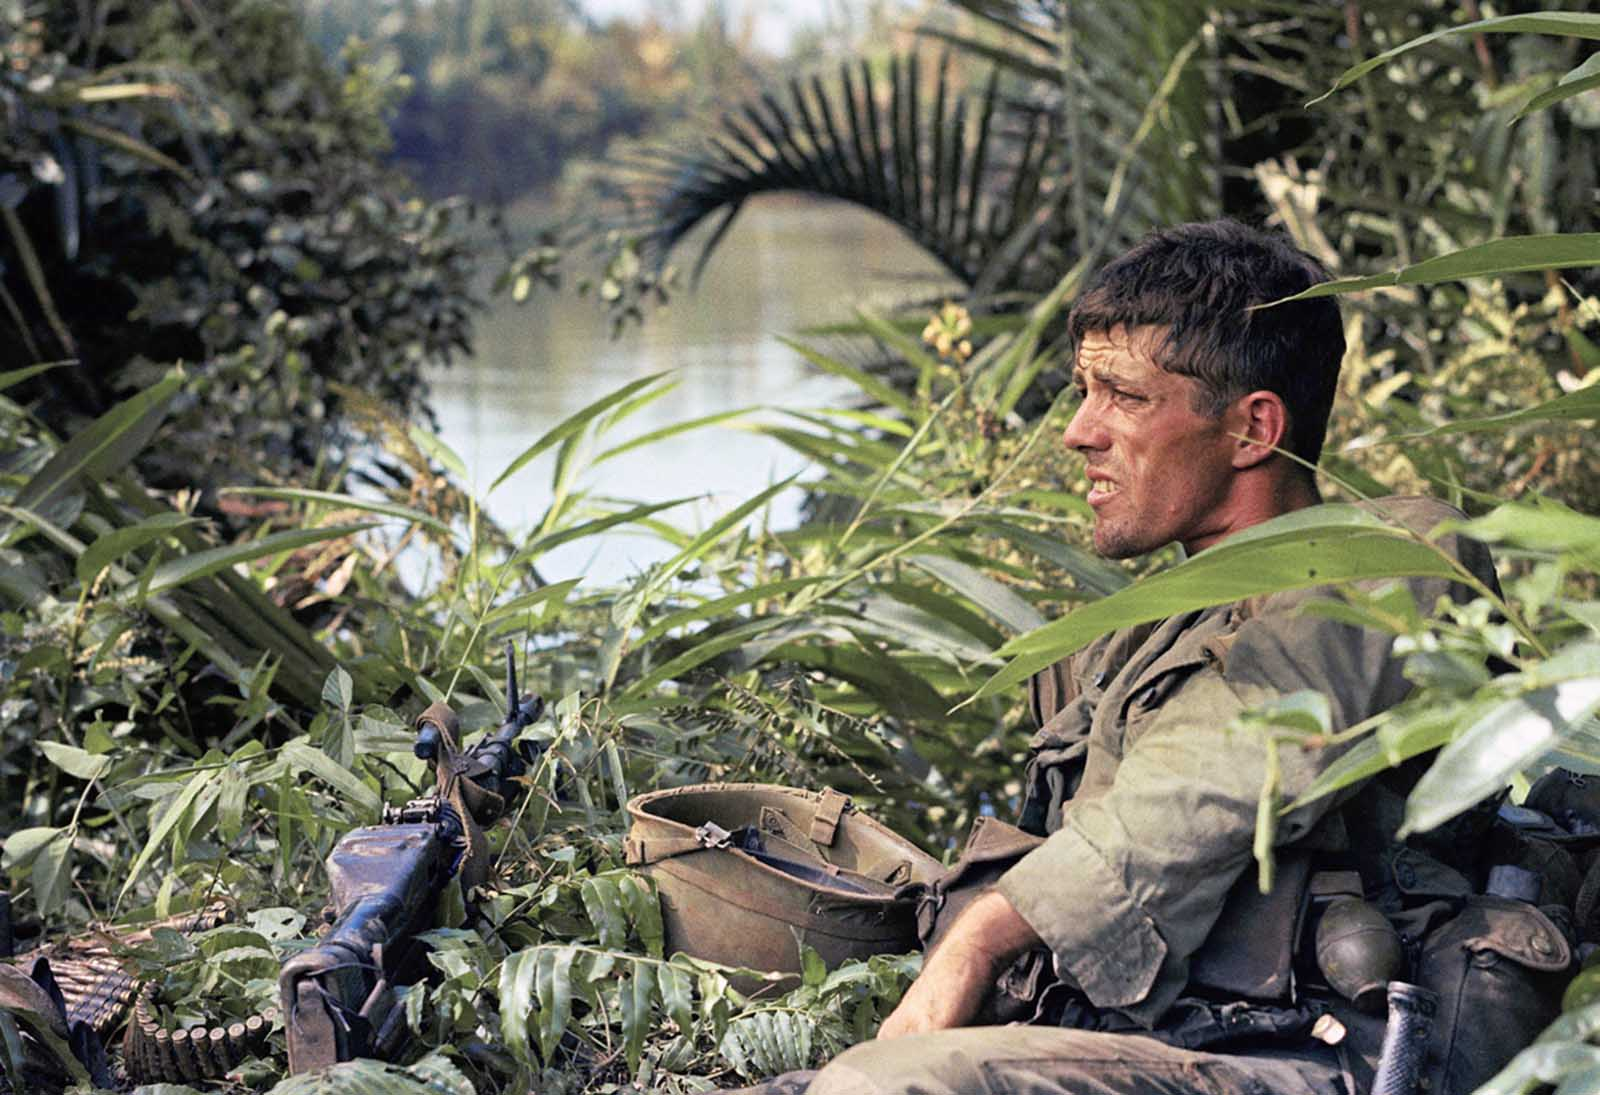 Rick Holmes of C company, 2nd battalion, 503rd infantry, 173rd airborne brigade, sits down on January 3, 1966, in Vietnam.